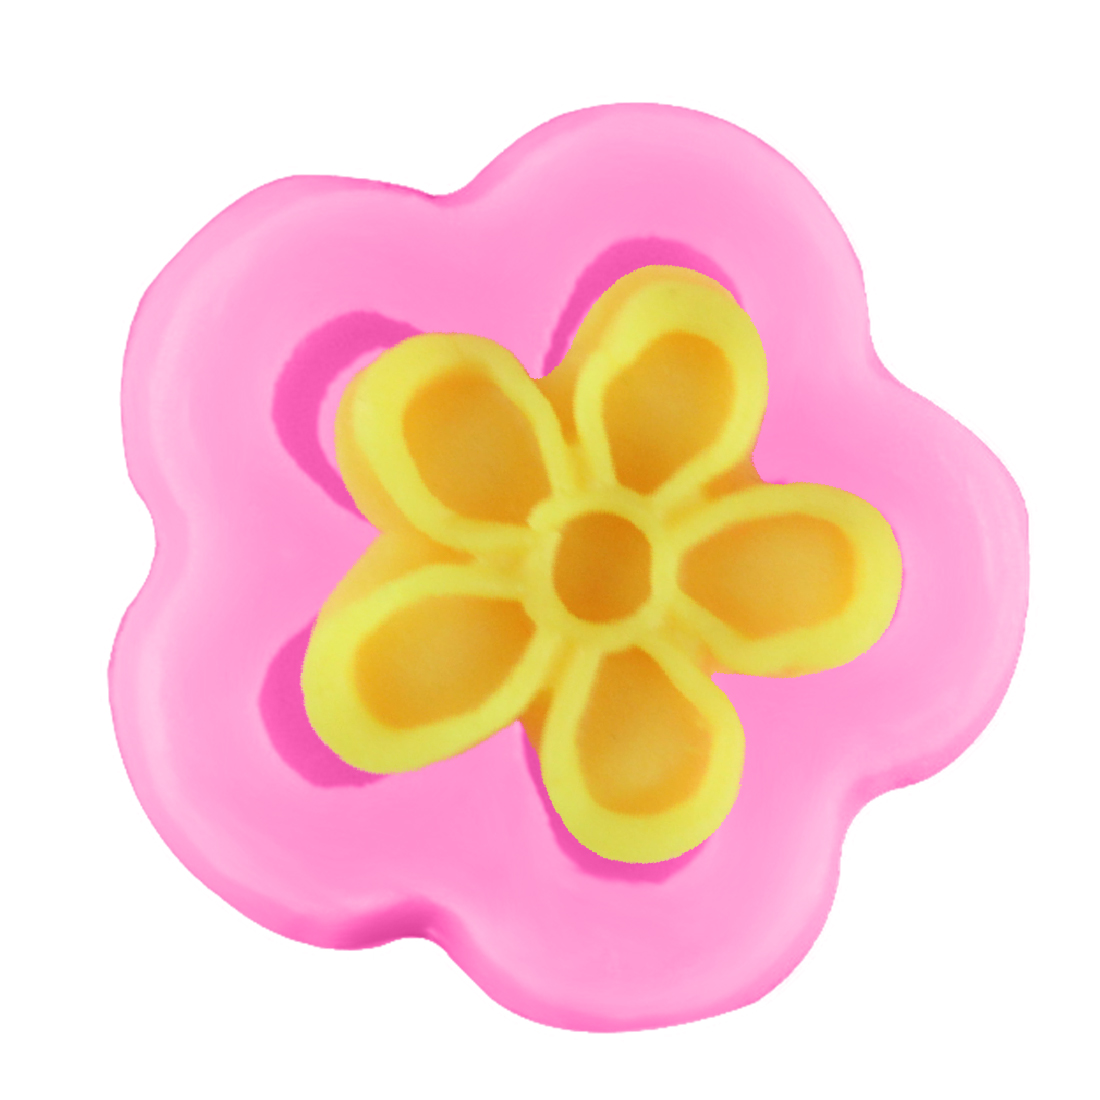 Great Small Flower Silicone Fondant Cake Mold Soap Chocolate Clay Mould DIY Tool